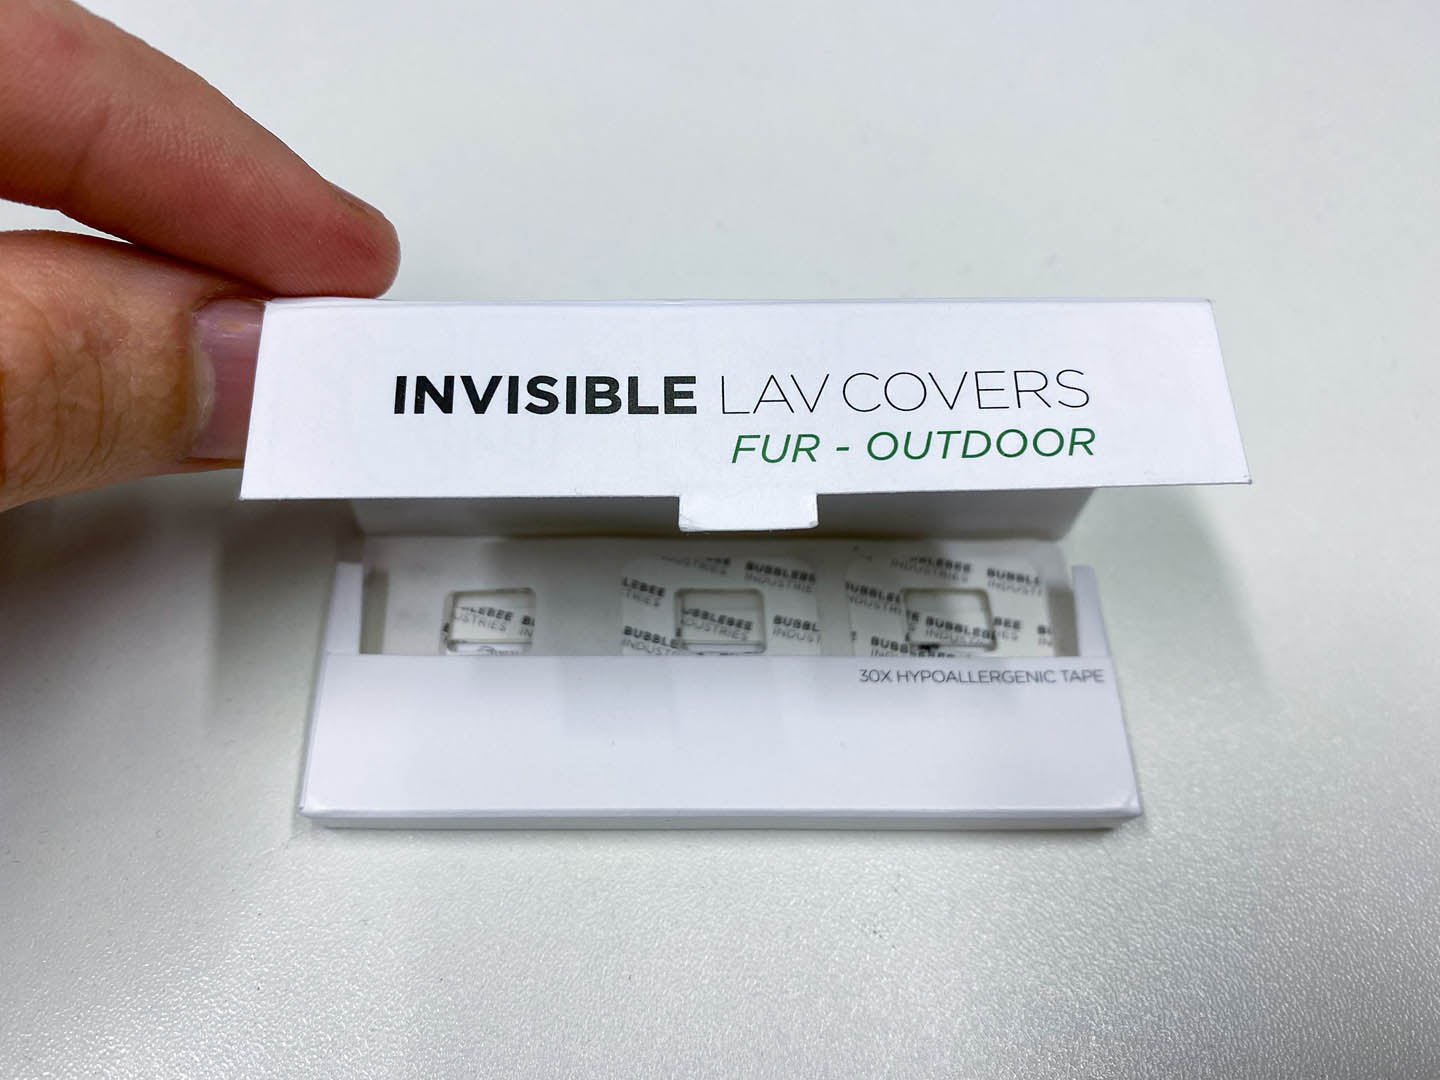 Invisible Lav Covers Fur Outdoor